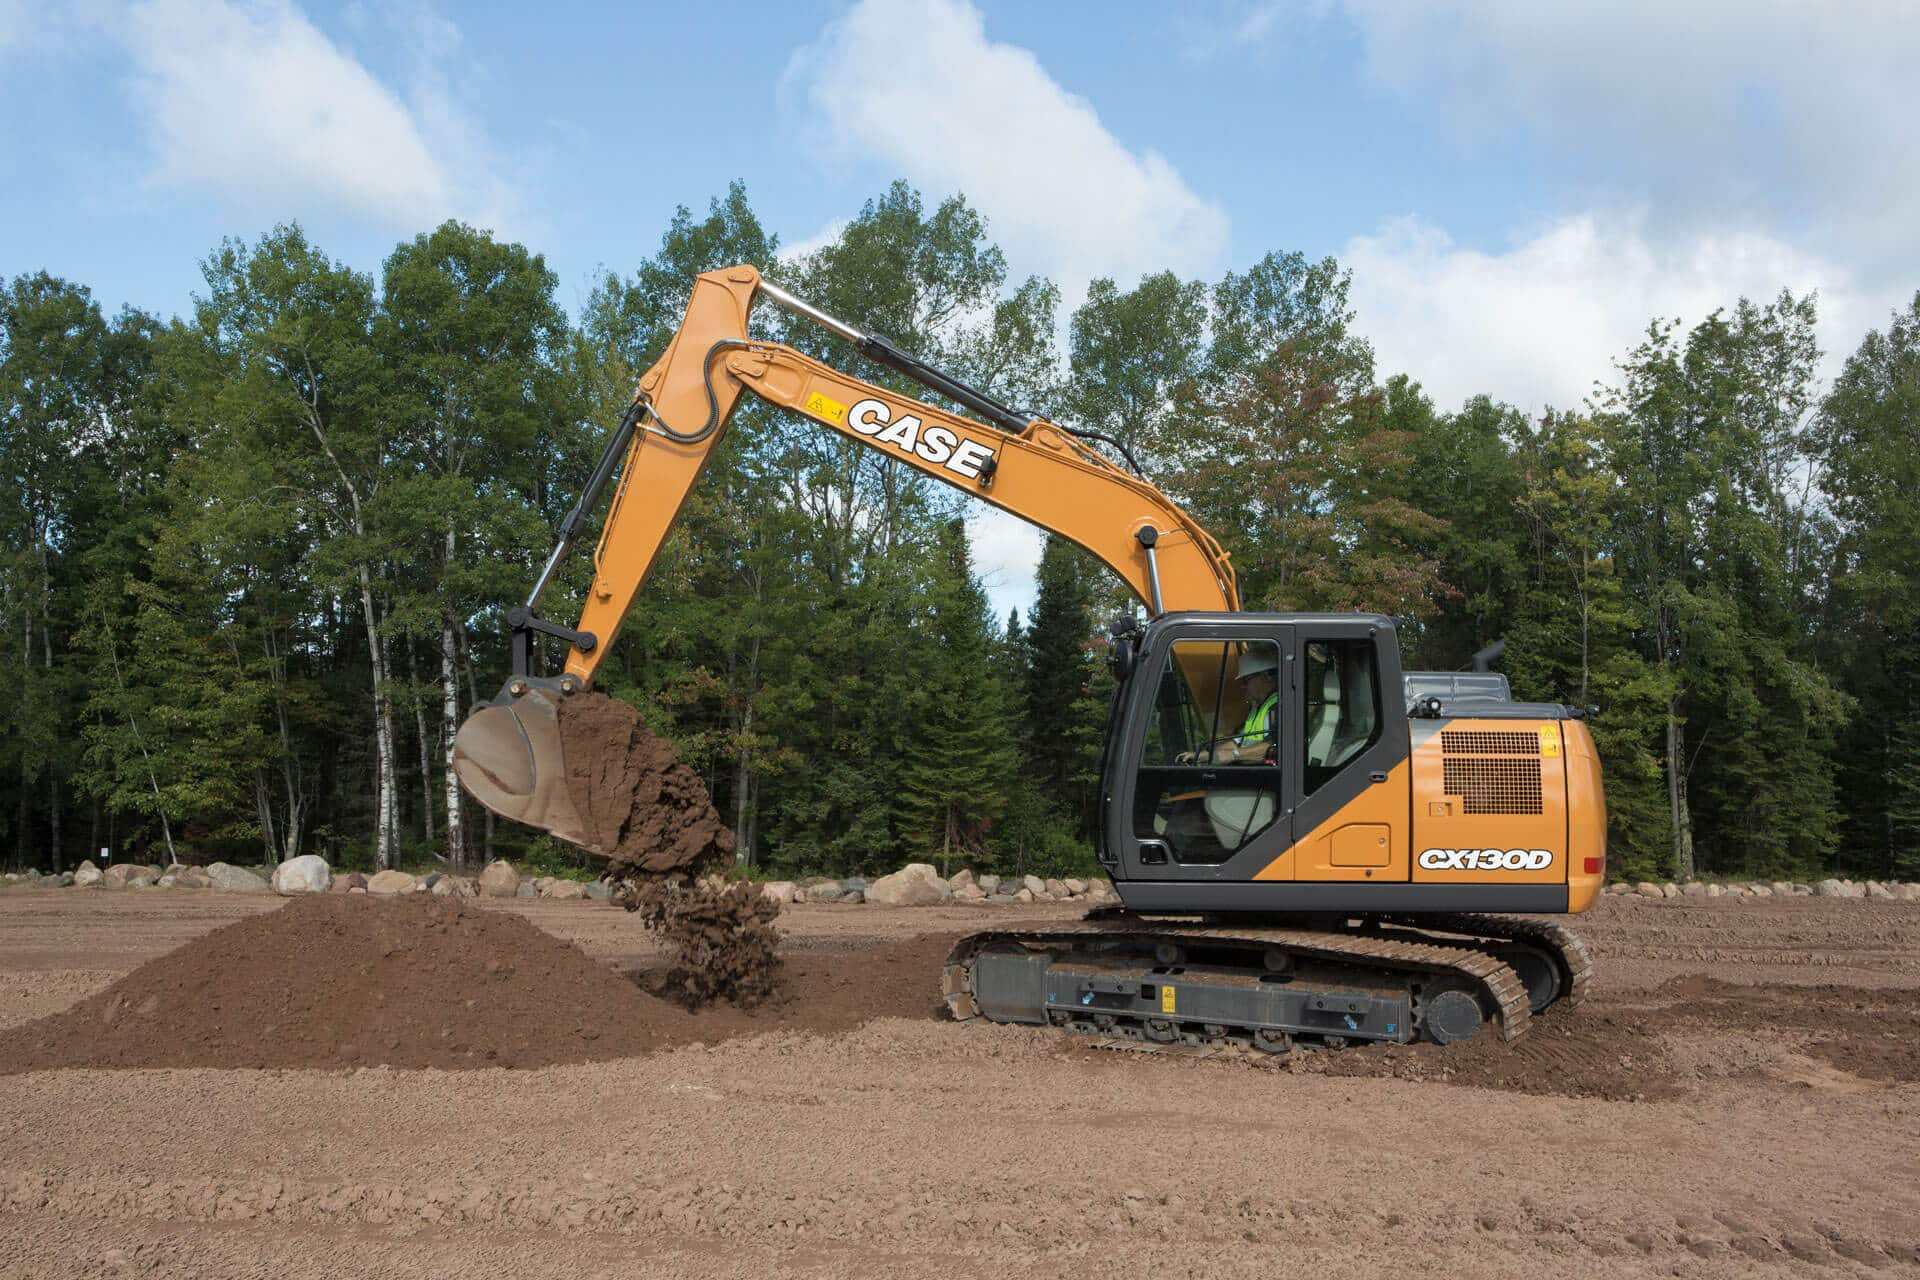 CASE CX130D Excavator | CASE Construction Equipment